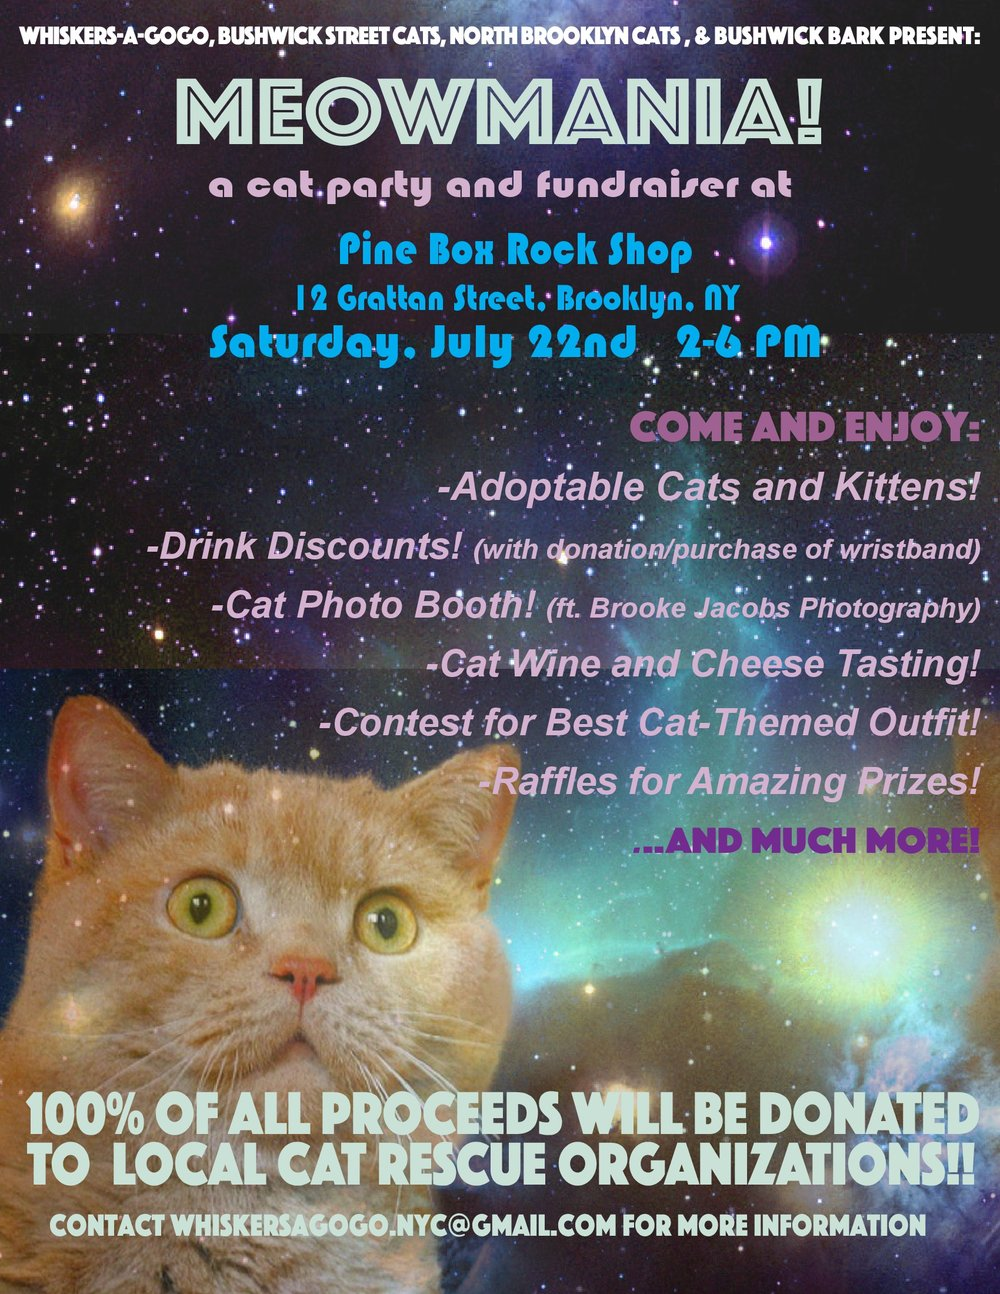 meowmania-cat-party-brooklyn-rescue-pine-box-rock-shop-that-cat-blog